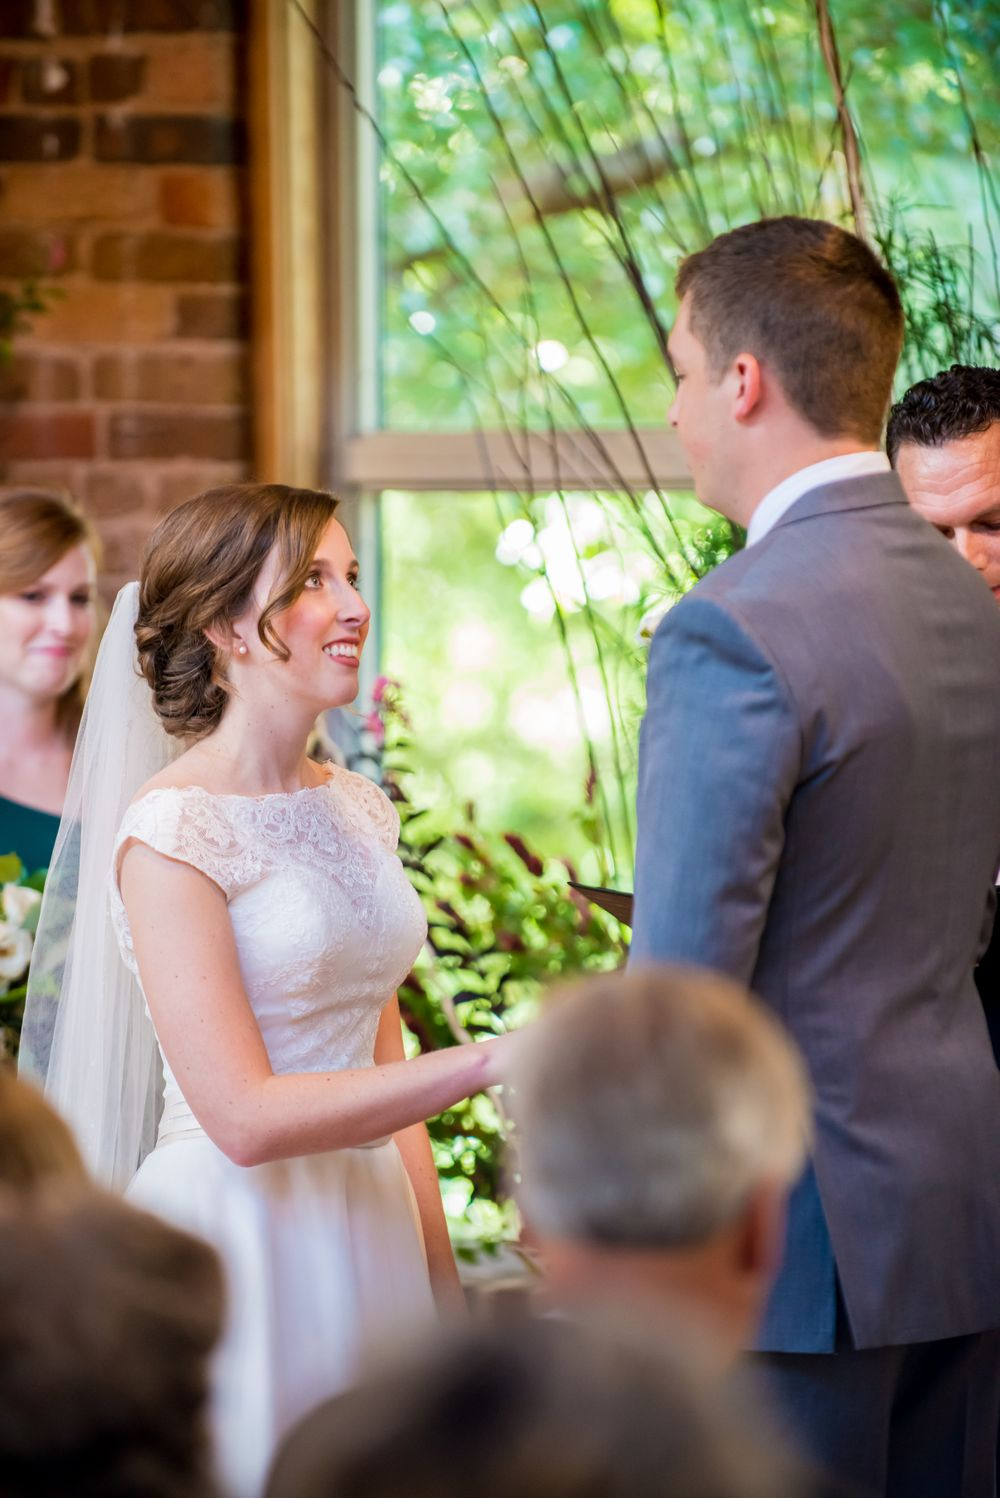 Bride Anna & Groom David exchange vows during their wedding at Certus Loft at the Huegonot Mill in Greenville, SC